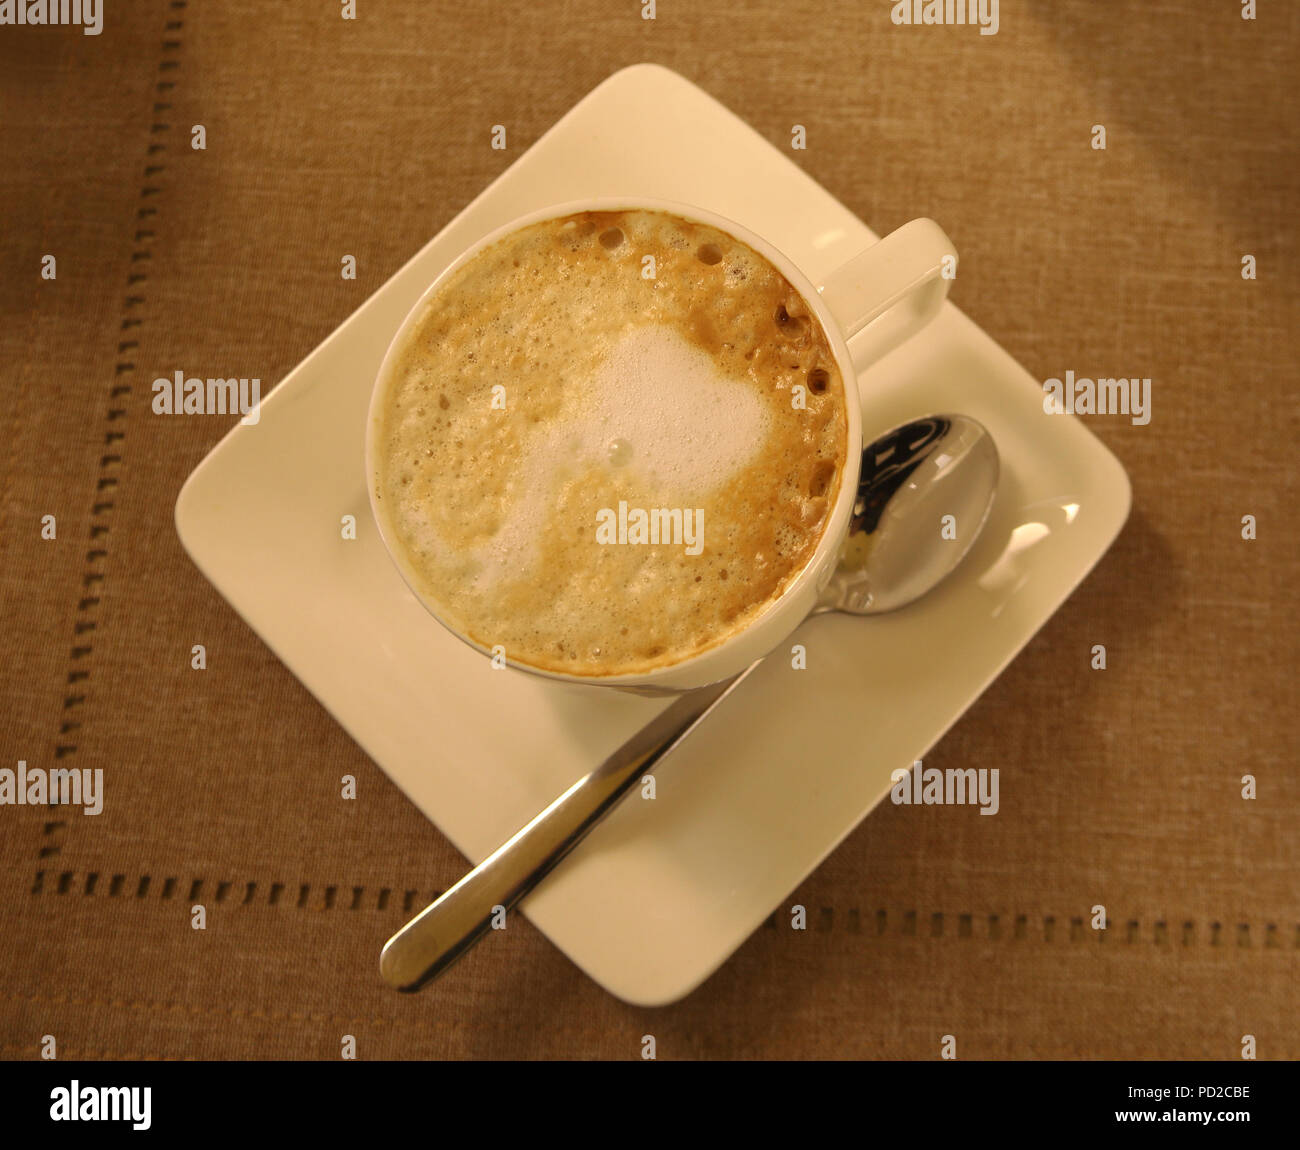 A cup of cappuccino on a beige brown linen tablecloth. Cafe, coffee break, coffeeshop, breakfast, restaurant, menu, closeup, flat lay. Nostalgic retro atmosphere. - Stock Image